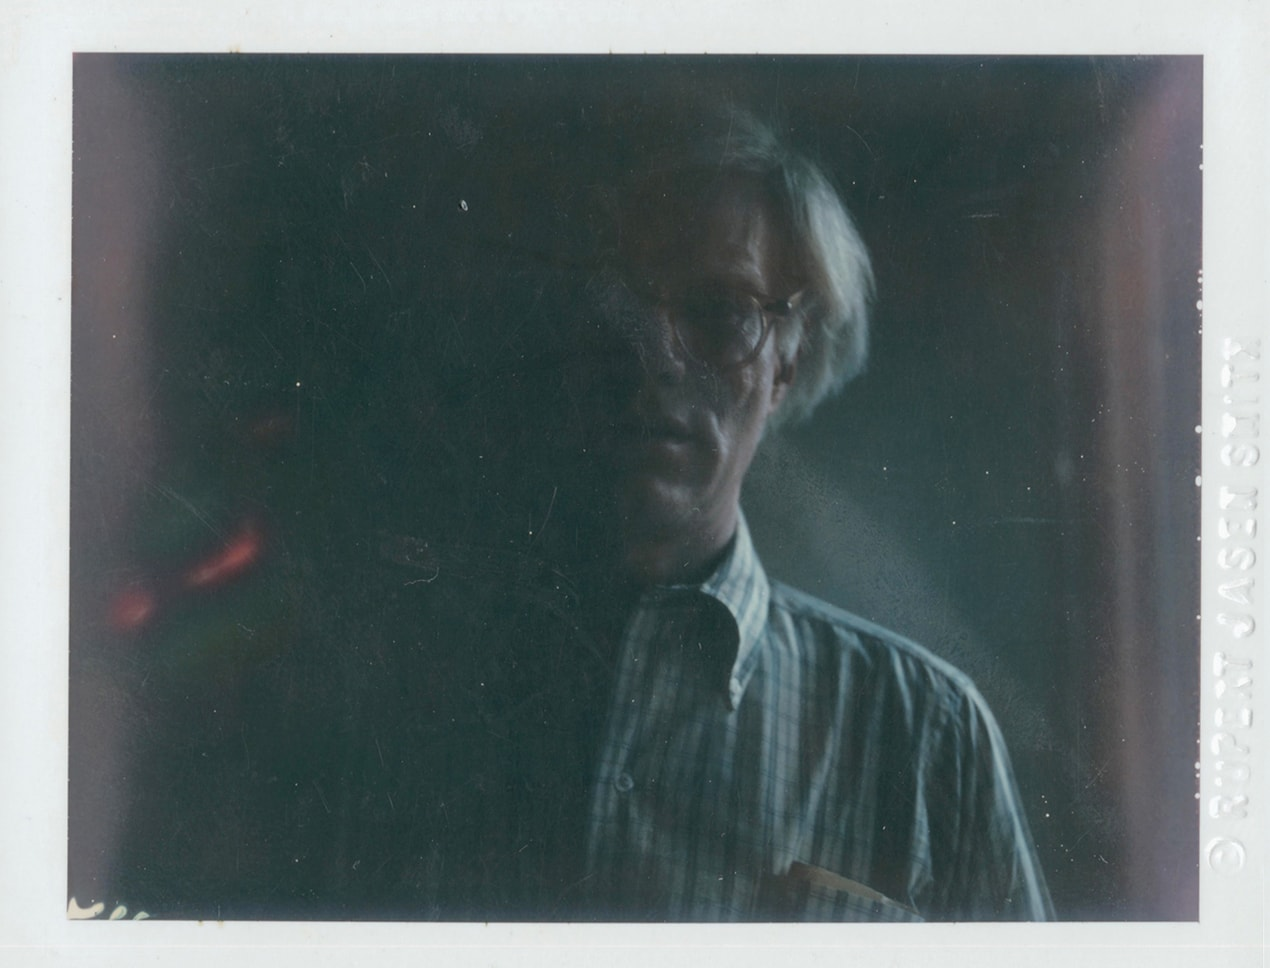 A self-portrait photograph of pop artist Andy Warhol